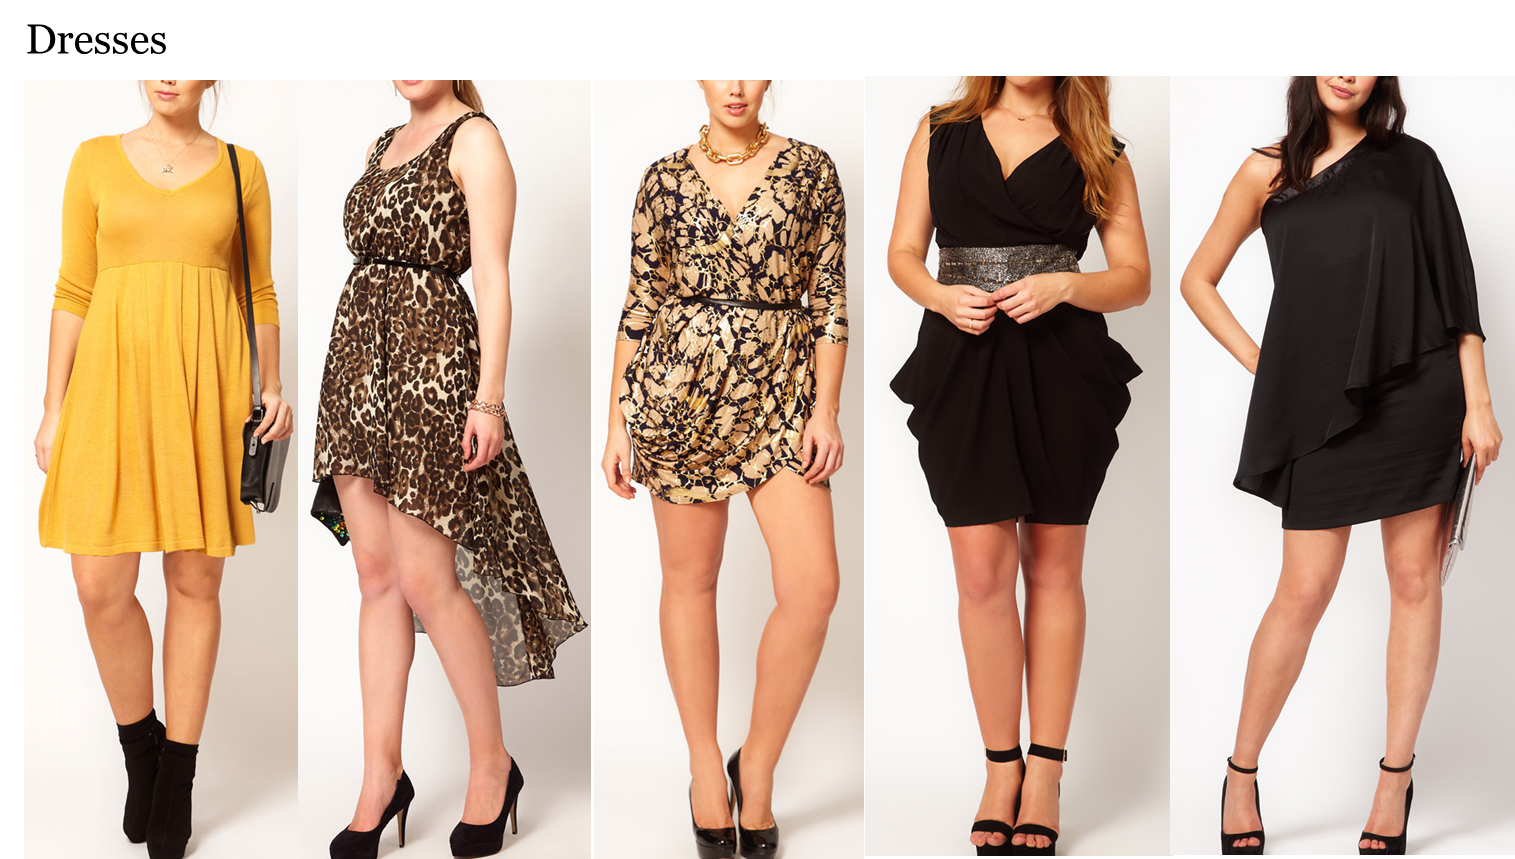 Dress styles for the apple shaped body